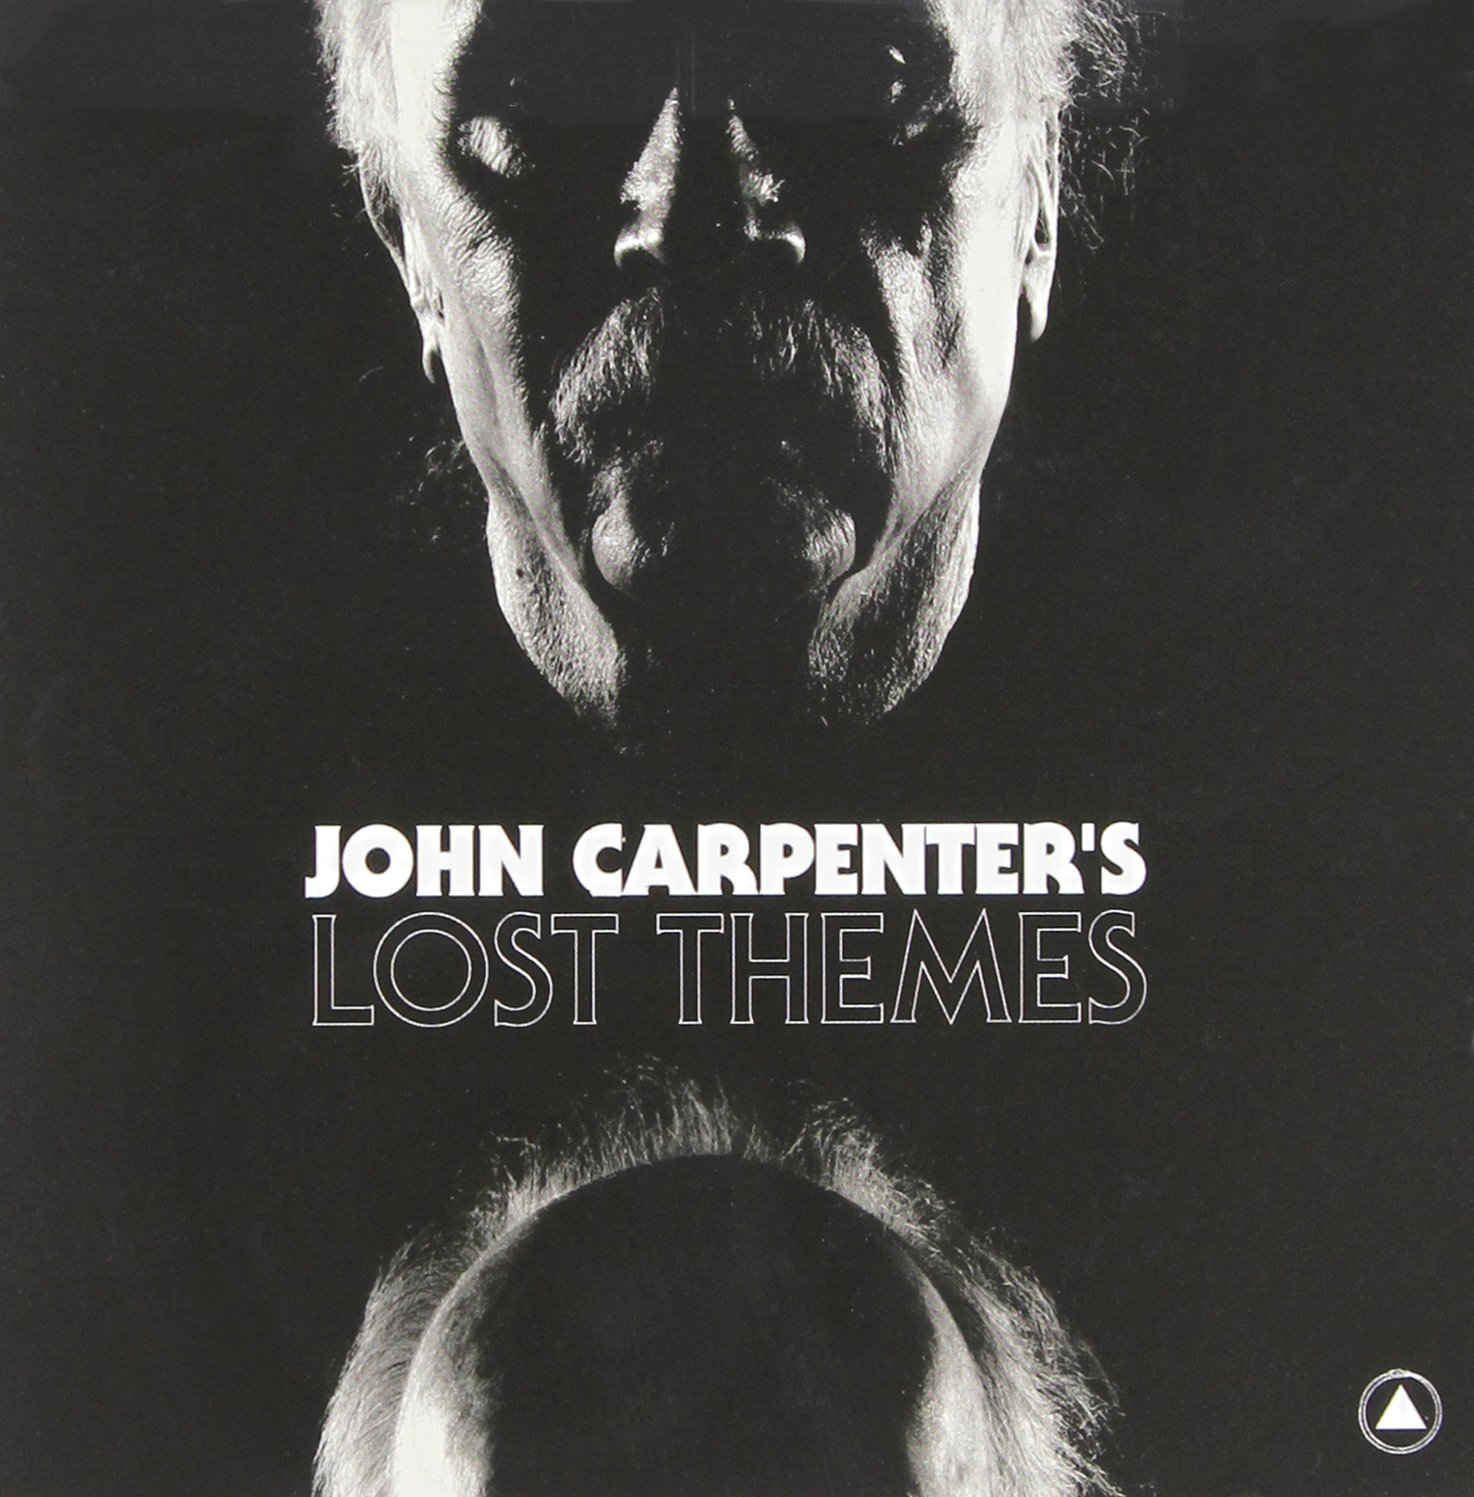 Lost themes (2015) (vinile)